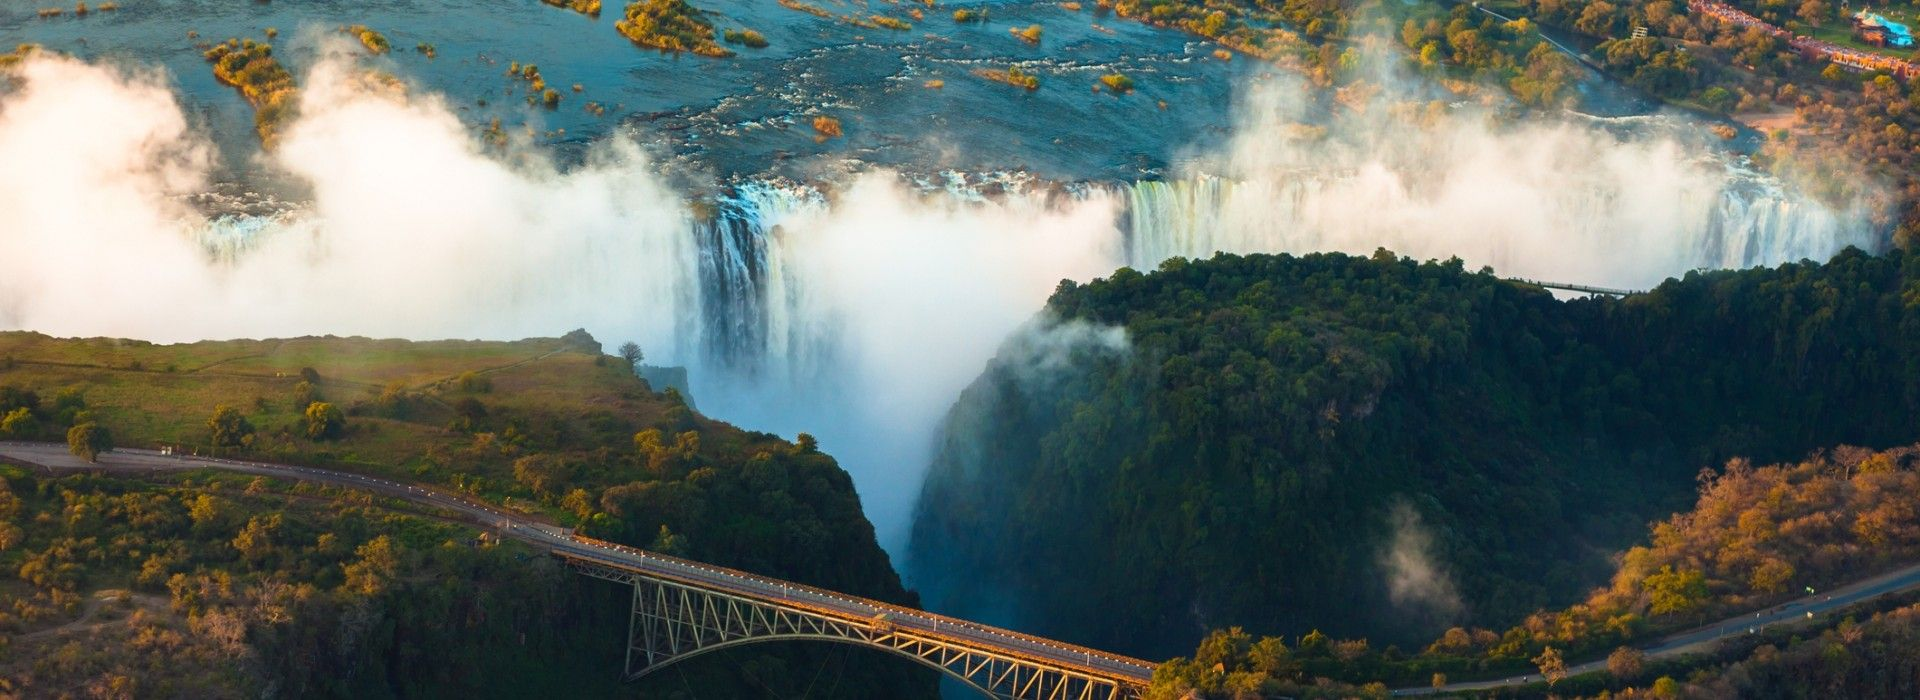 Natural landmarks sightseeing Tours in Zambia